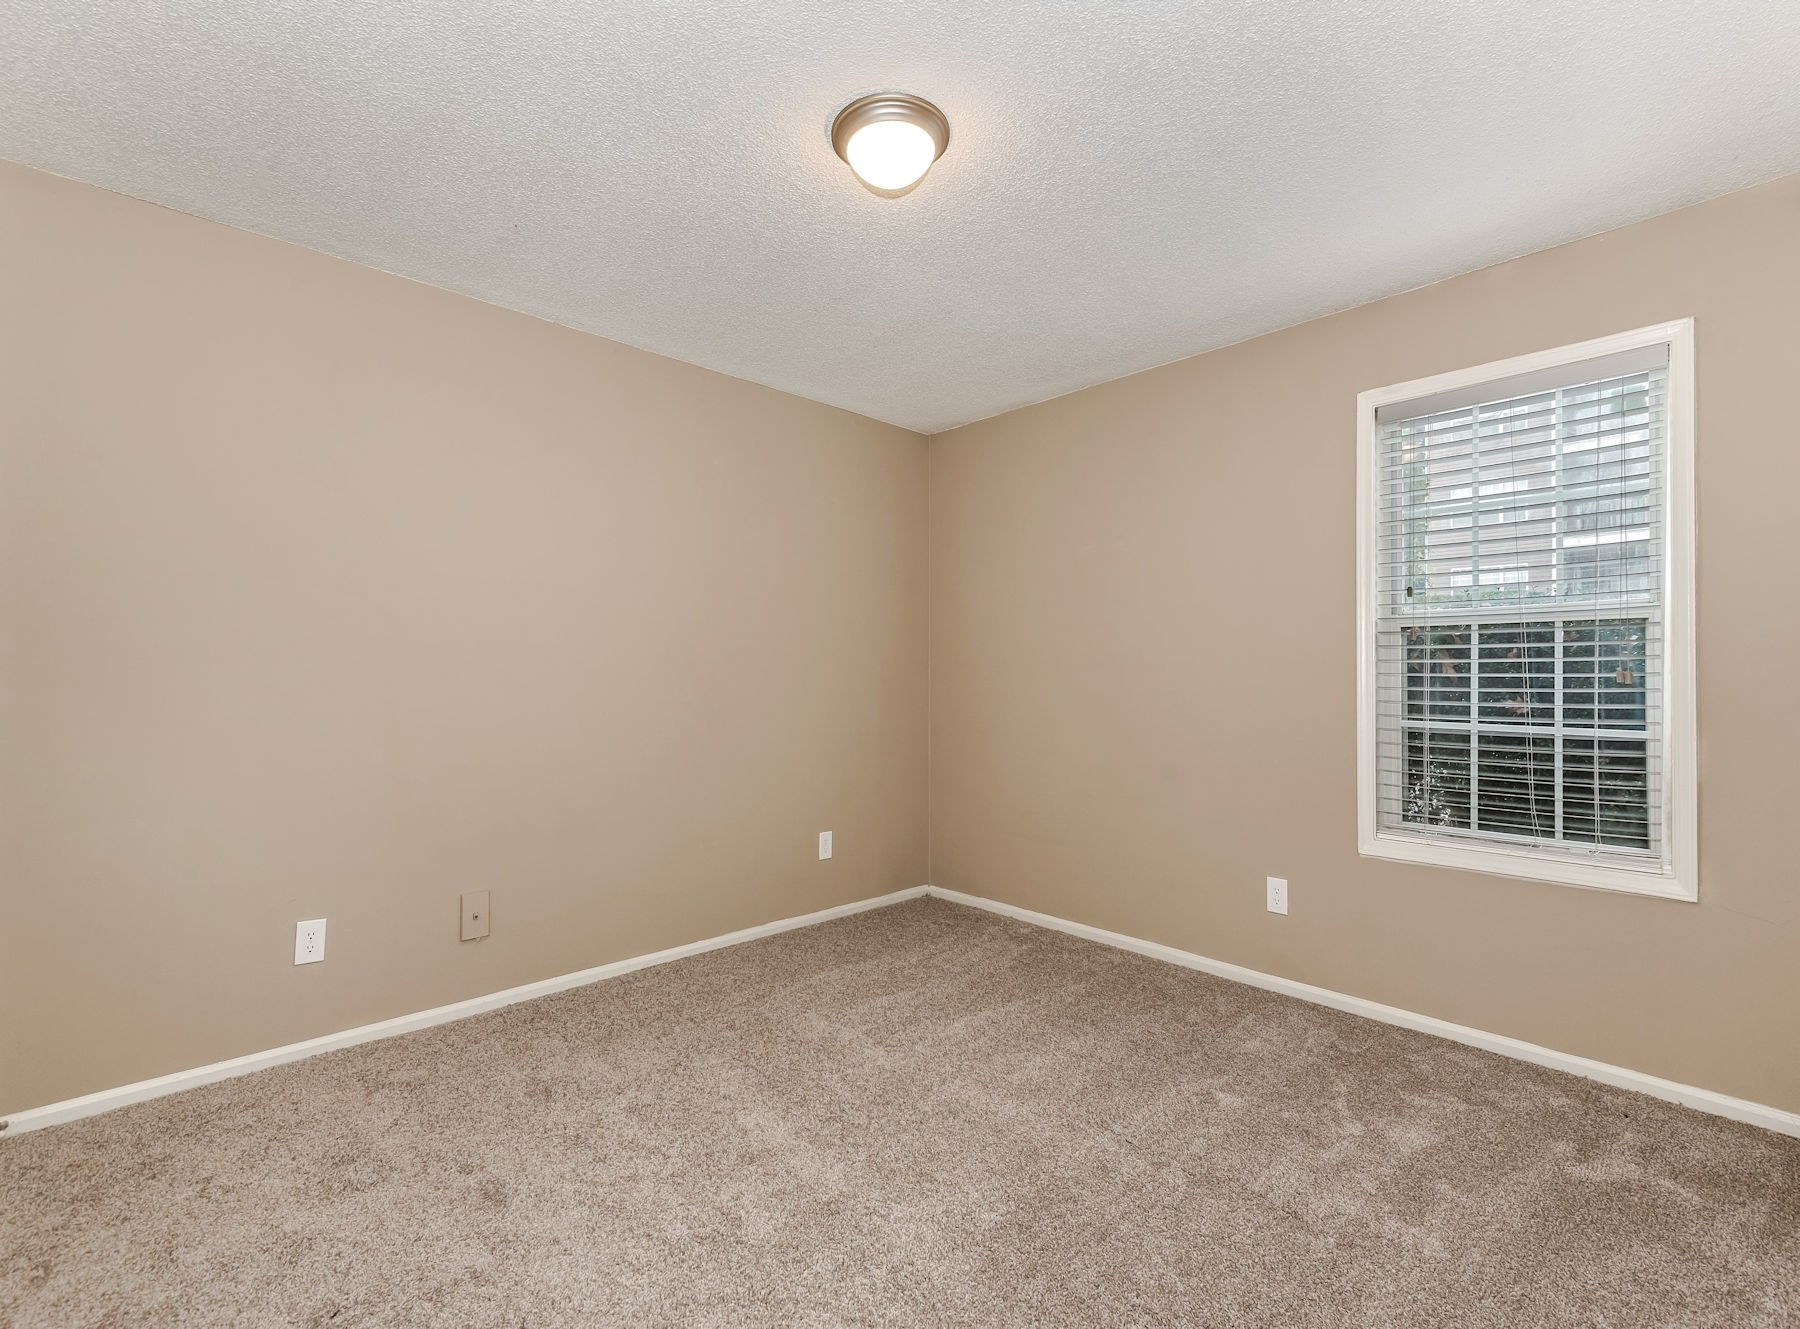 Model Bedroom With Carpet & Two Tone Paint